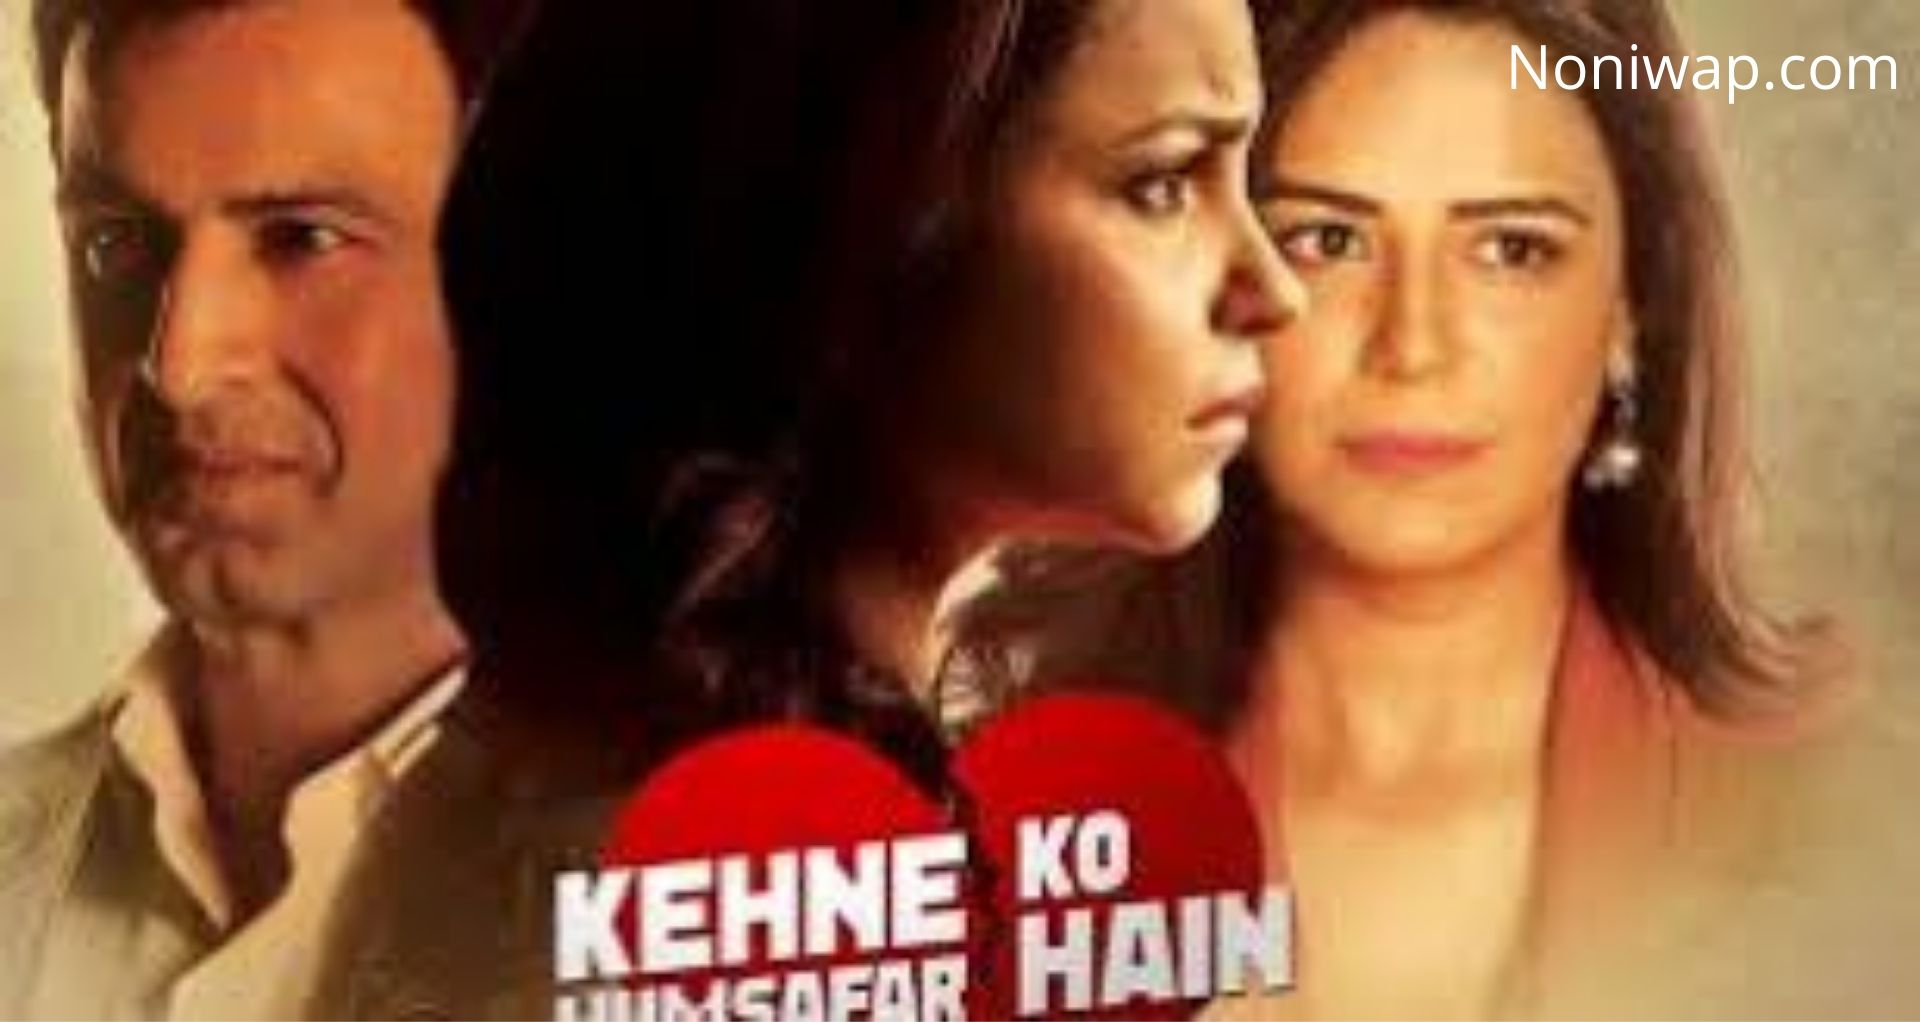 Kehne Ko Humsafar Hain 18 April 2020 Written update